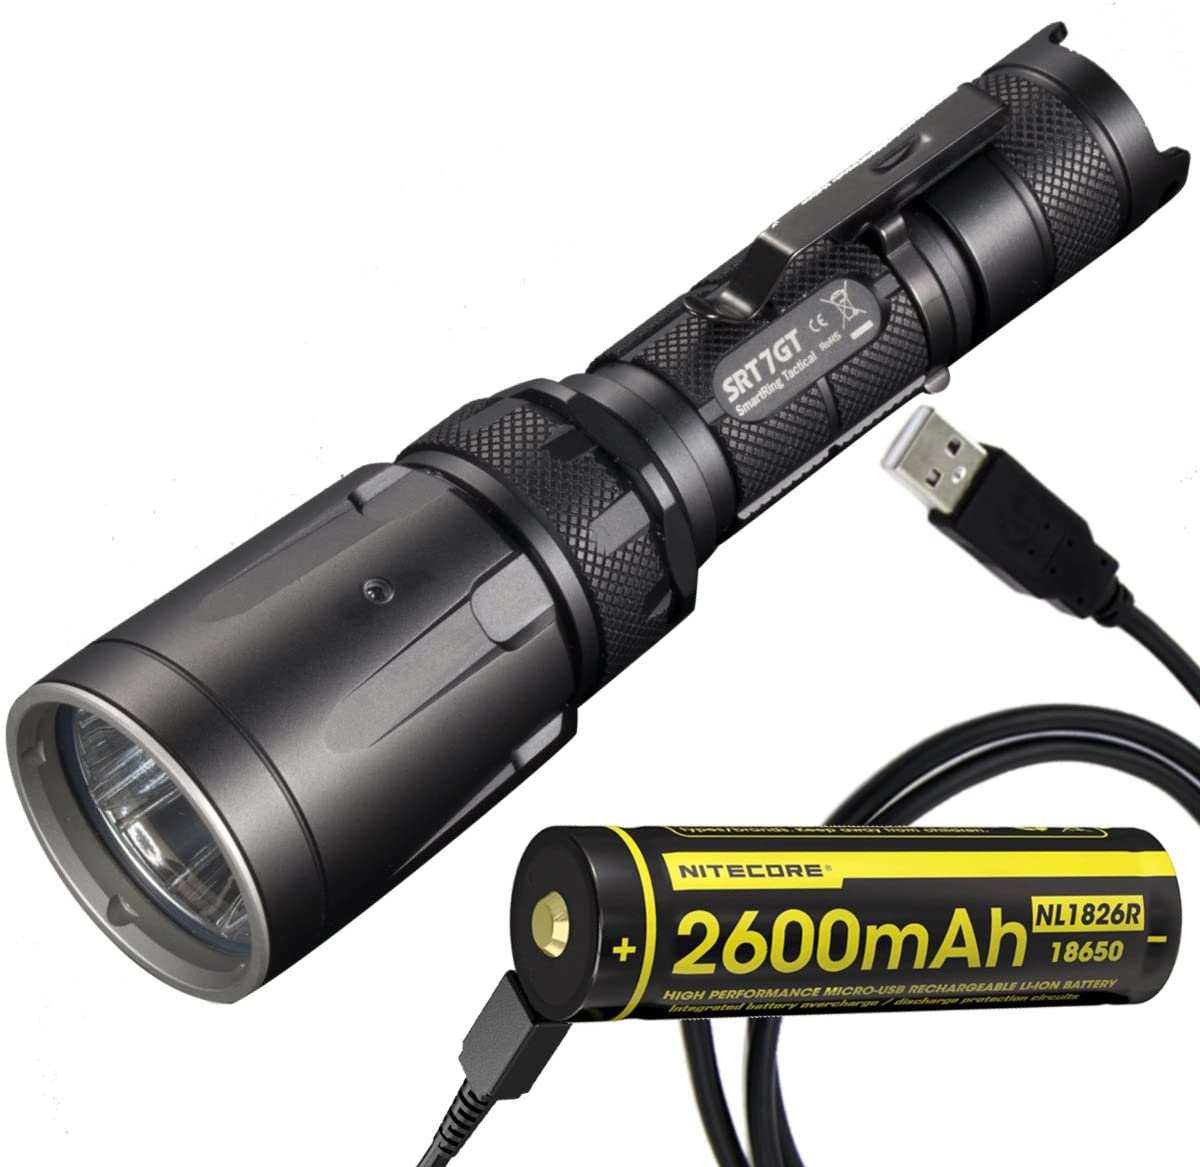 Nitecore SRT7GT Tactical Multi-LED Flashlight Plus NL1826R 2600mAh Rechargeable Battery with Built-in Micro-USB Charge Port & LumenTac USB Cable